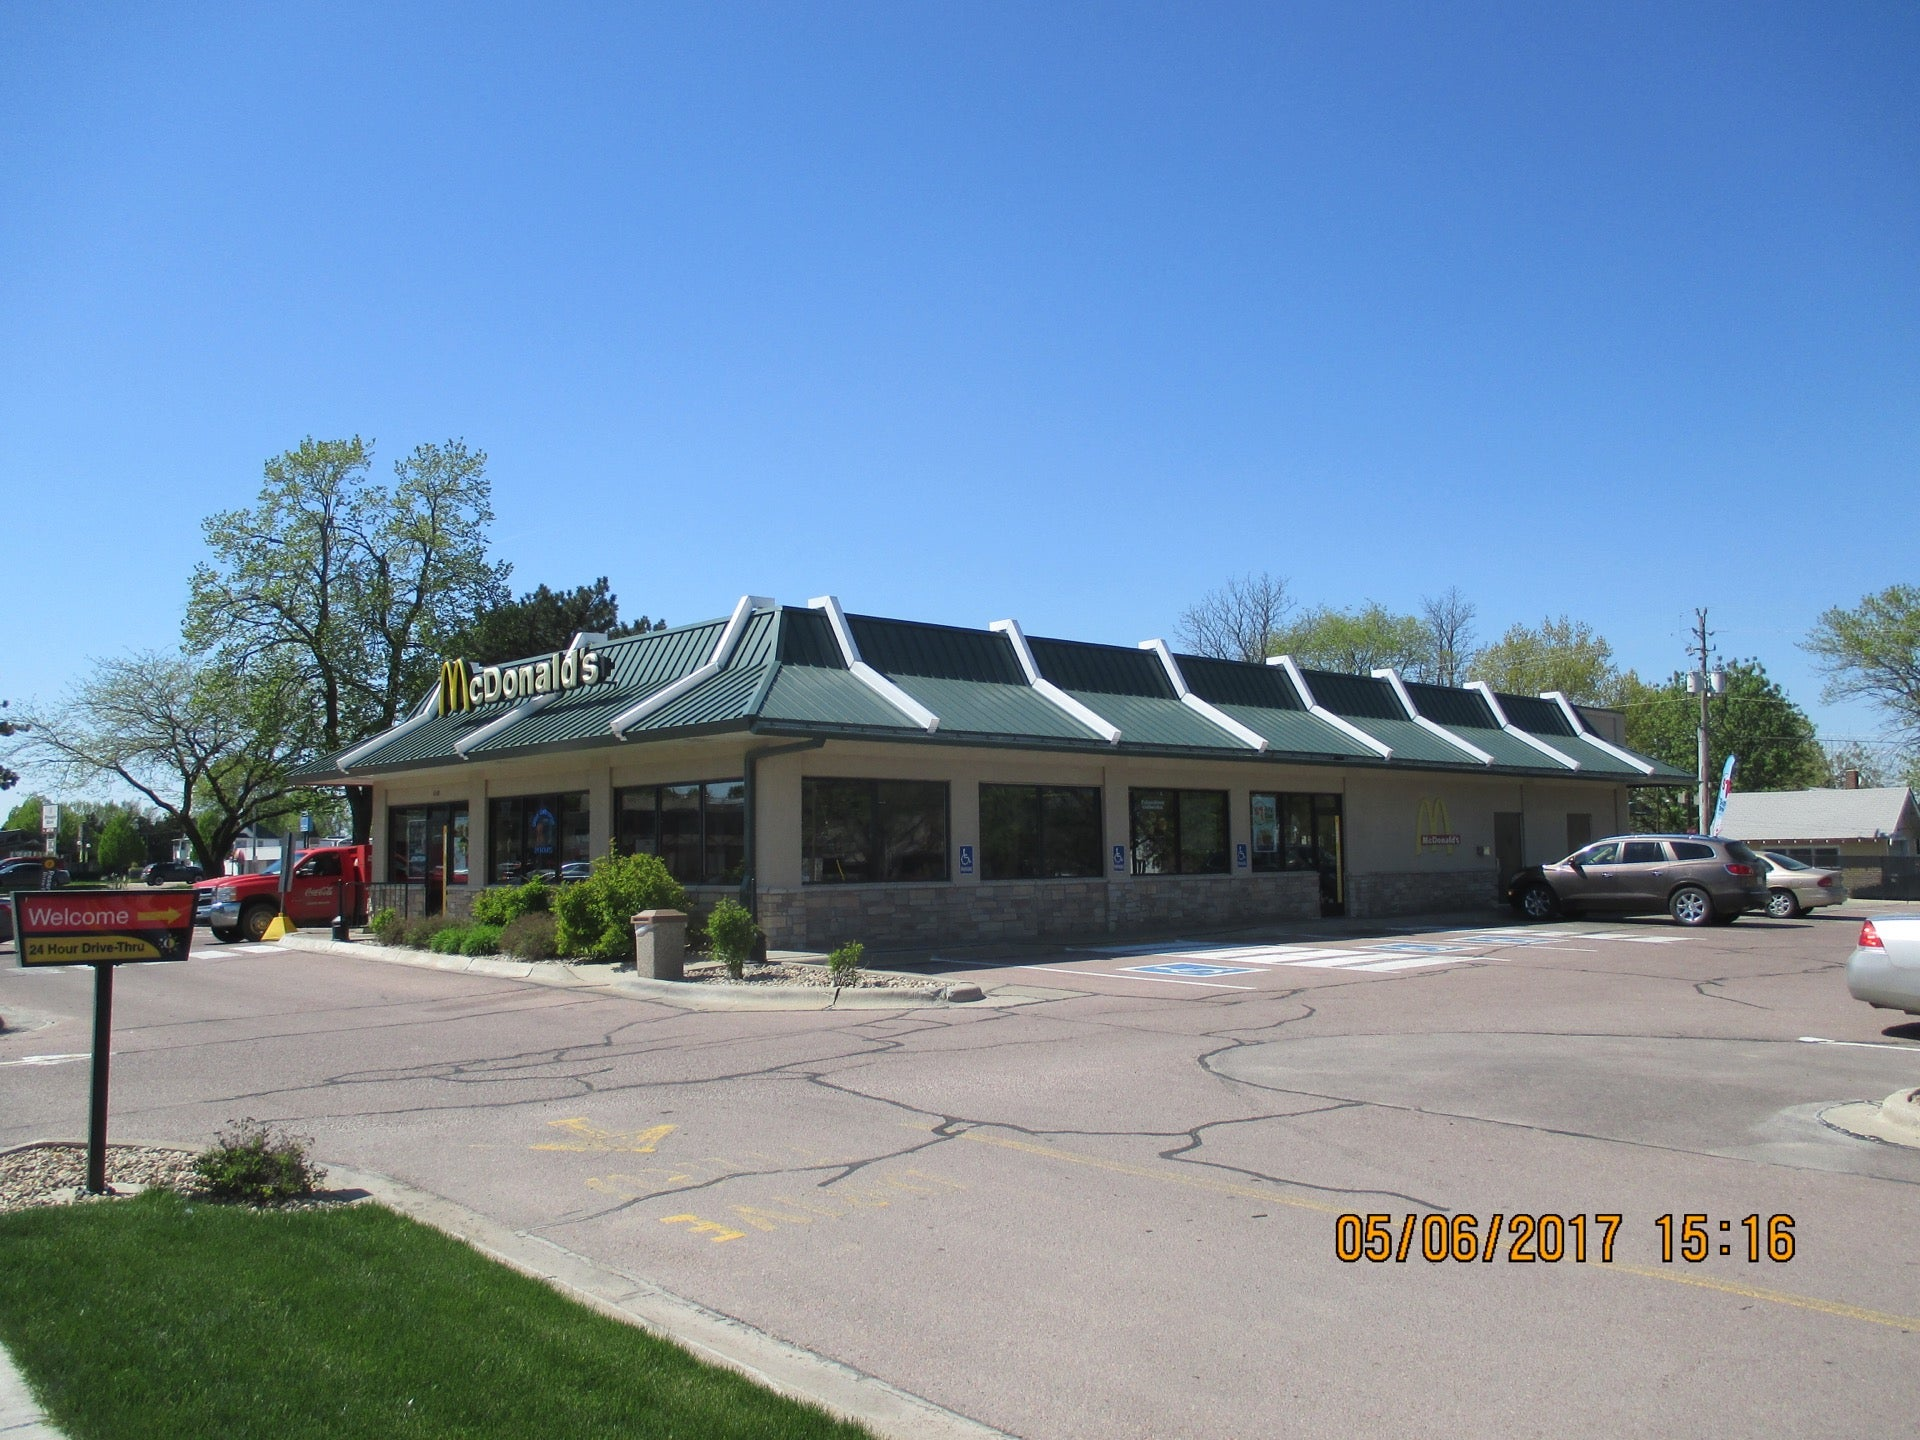 mcdonald s at 4105 morningside ave sioux city ia the daily meal